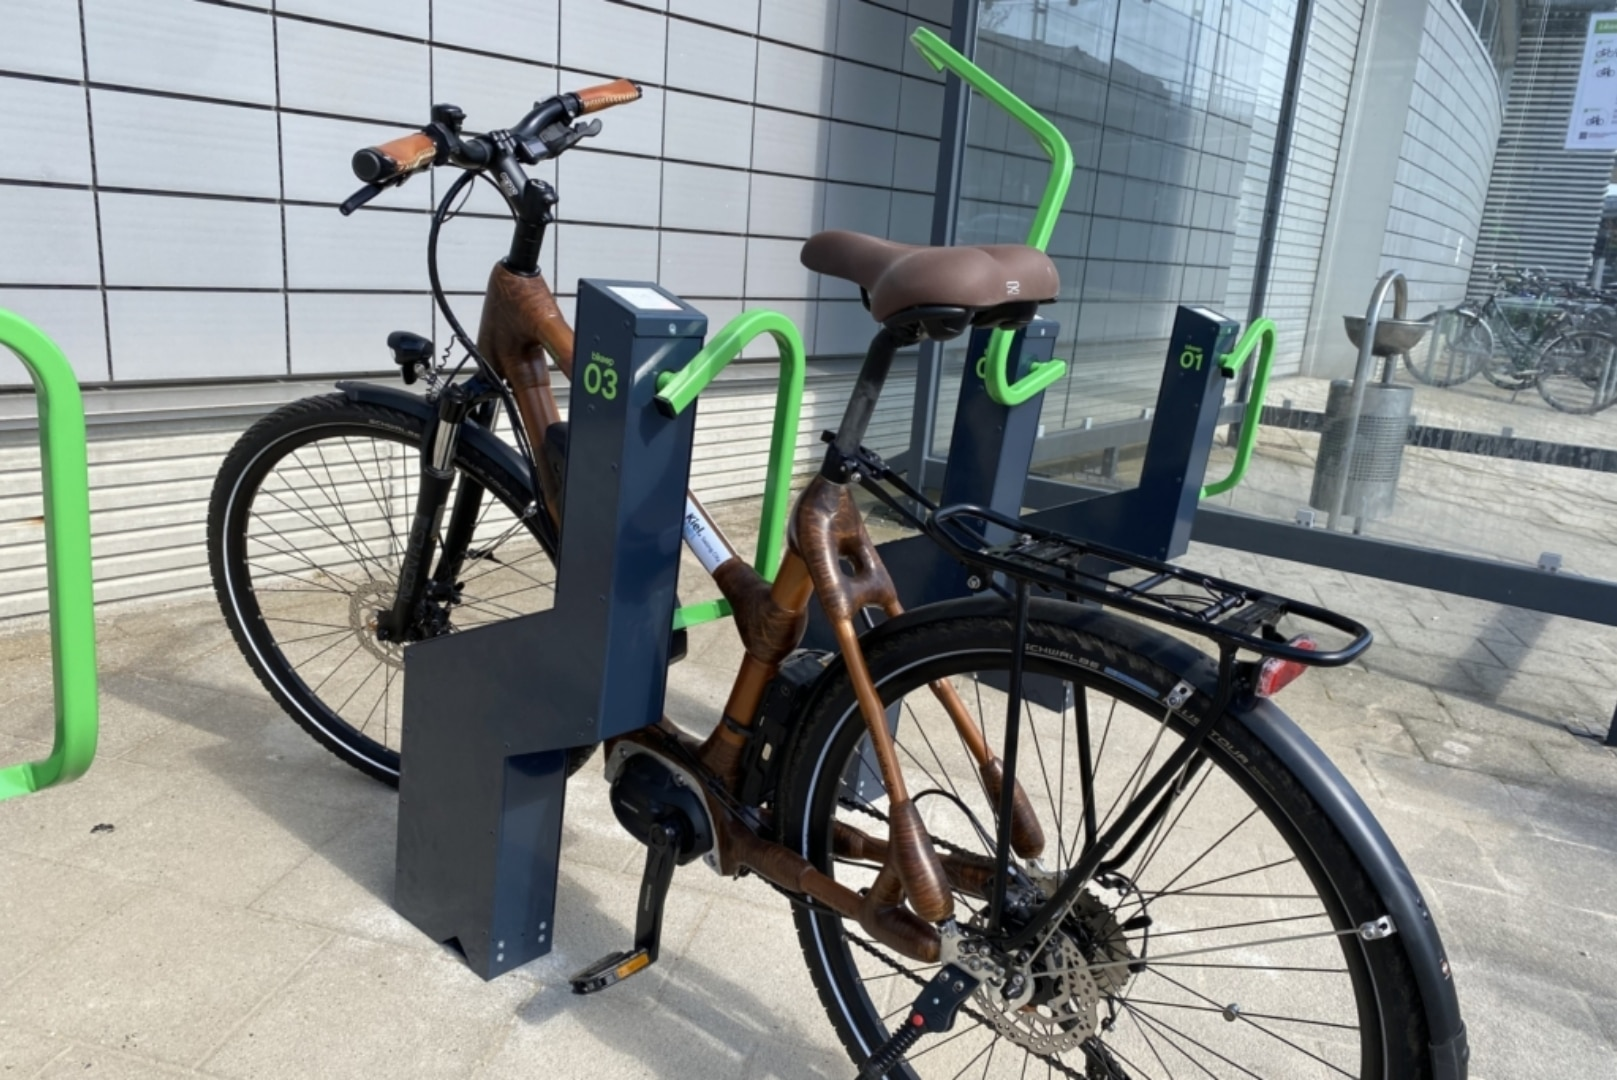 Kiel publication: High-tech bicycle station, where you can charge your e-bike for free